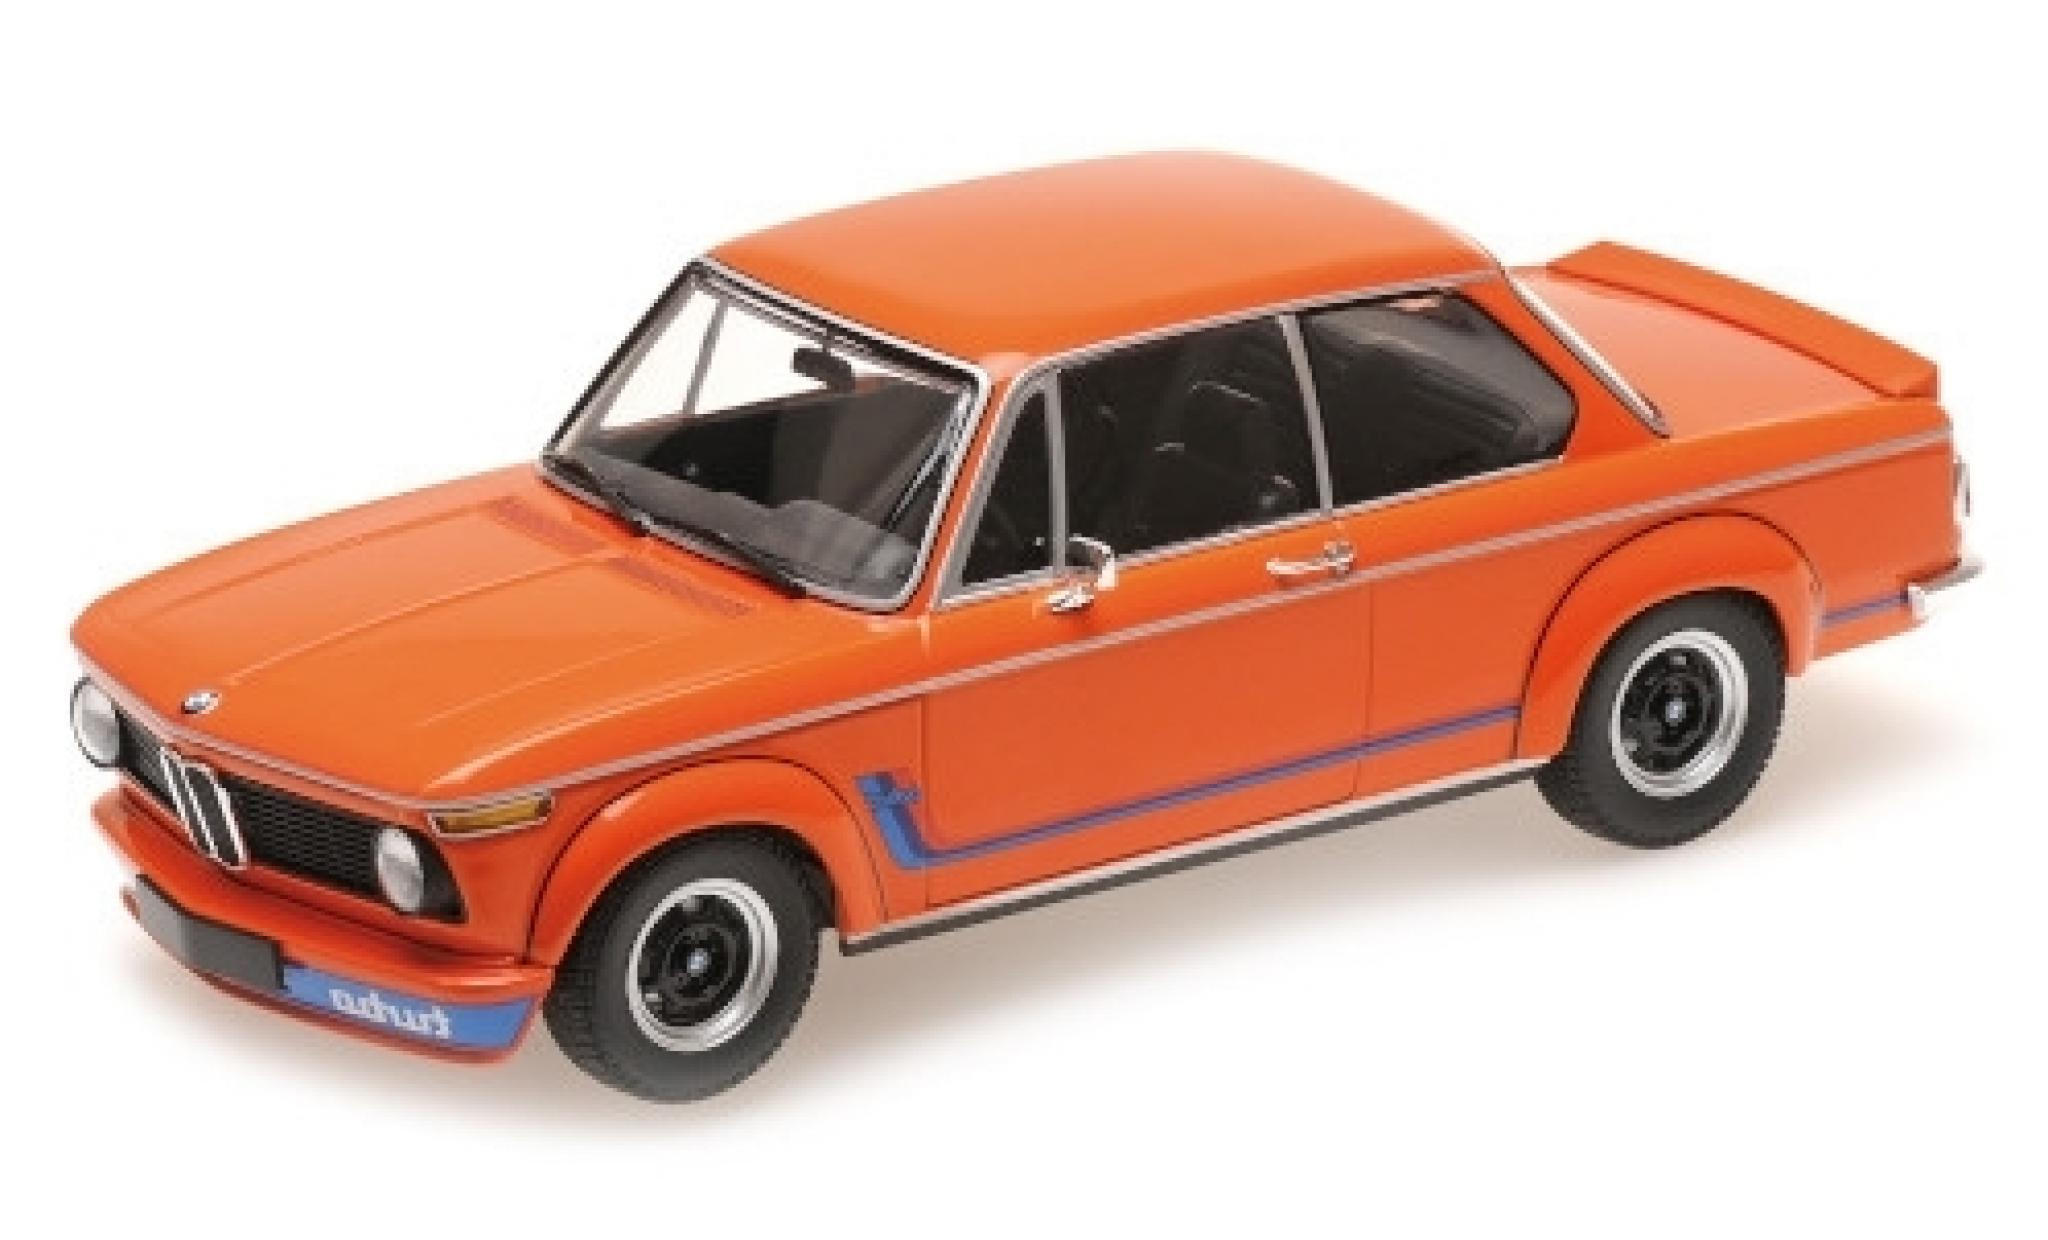 Diecast Model Cars Bmw 2002 1 18 Minichamps Turbo Orange Dekor 1973 Alldiecast Us